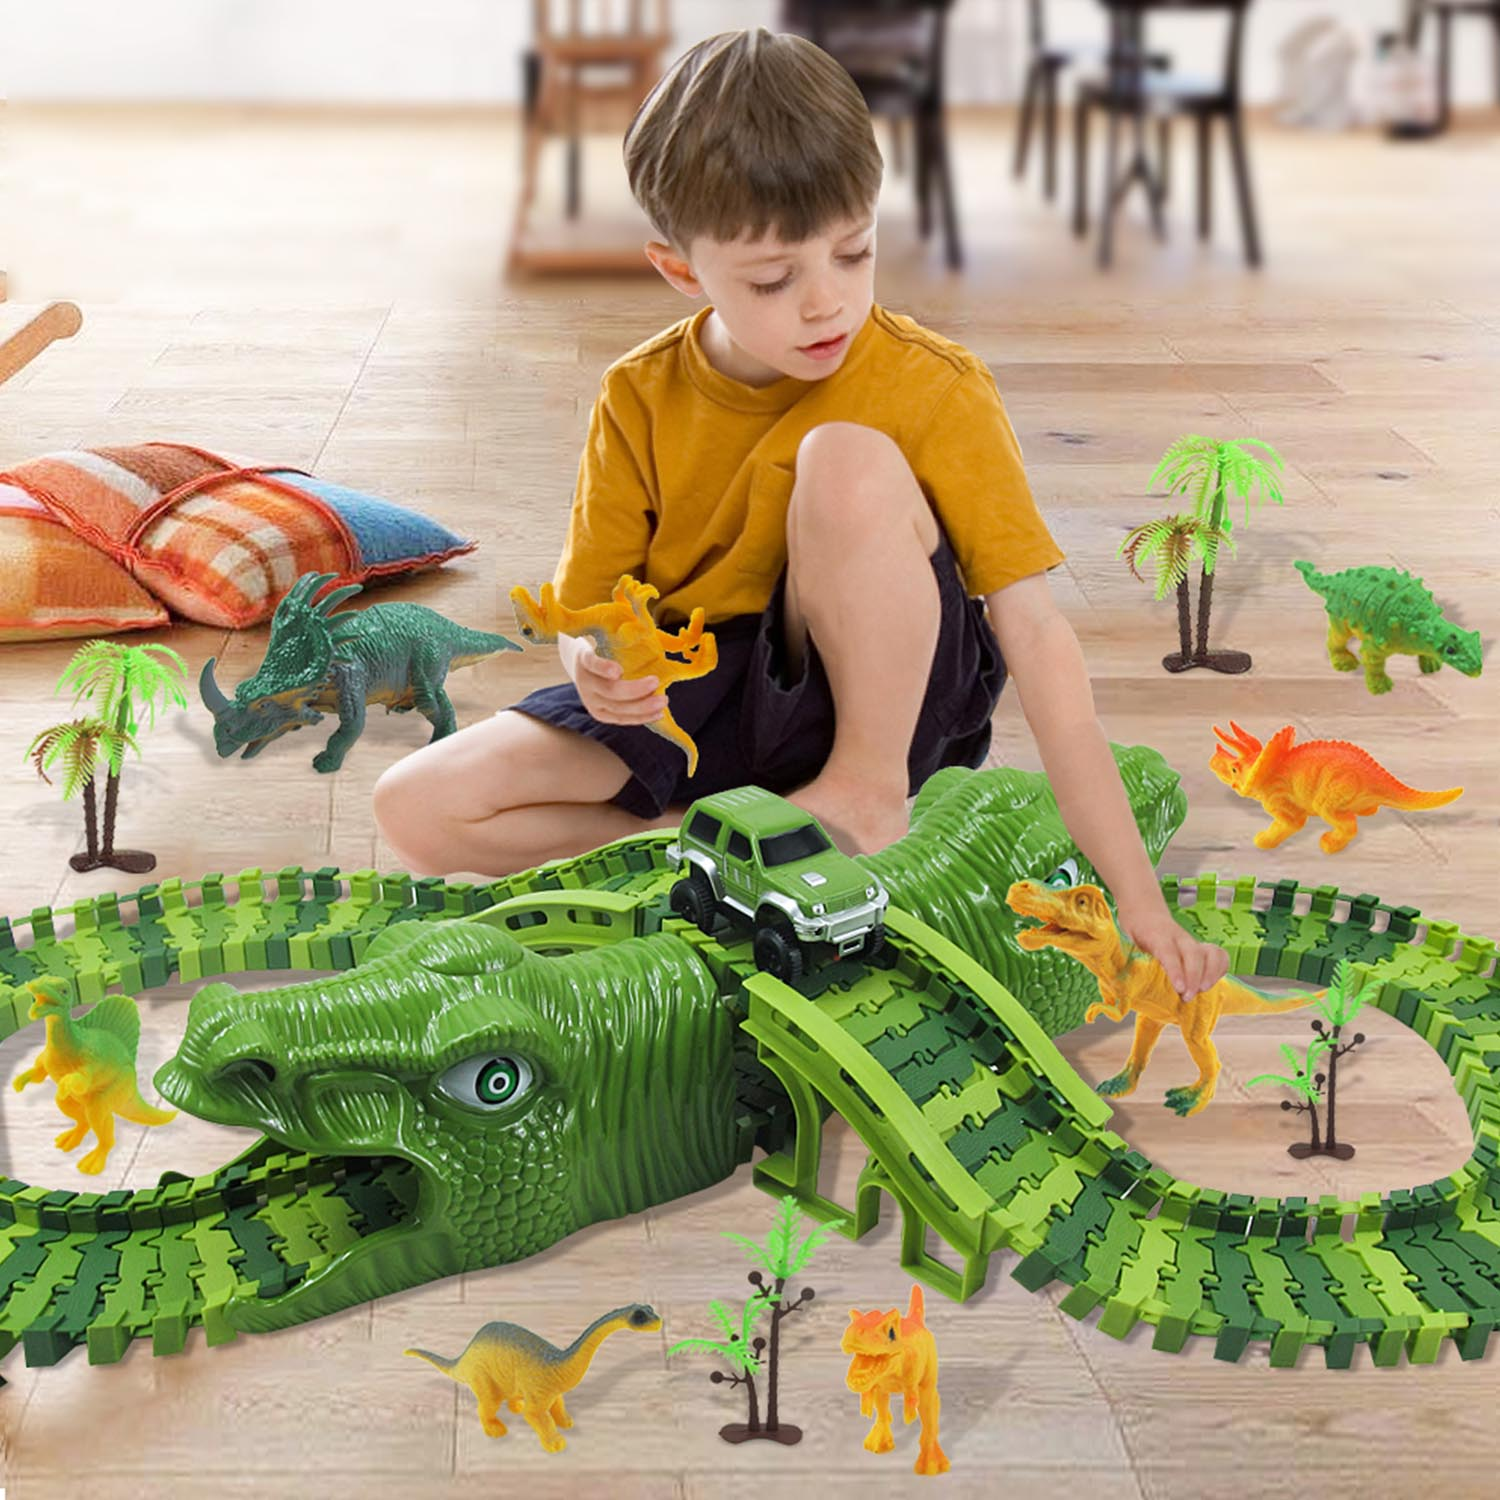 Kids 153PCS DIY Assemble Jurassic Dinosaur Race Track Set Magical Racing Track Railway Electric Race Car Dinosaur Model Toy